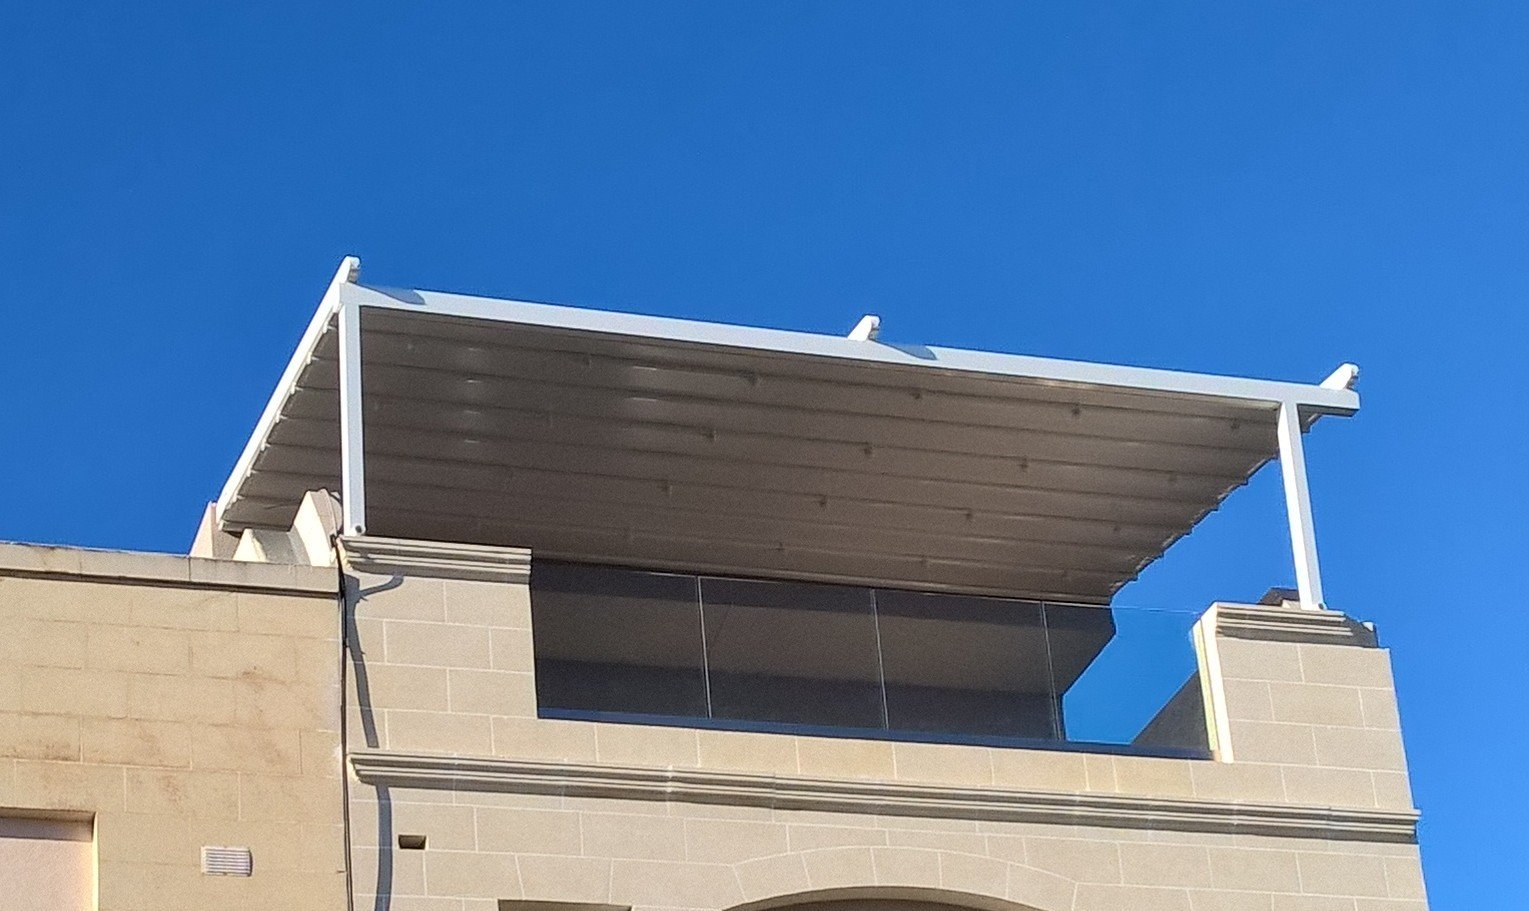 Rooftop Pergola with Glass railings with stunning views across Malta & Rooftop Pergola Installation